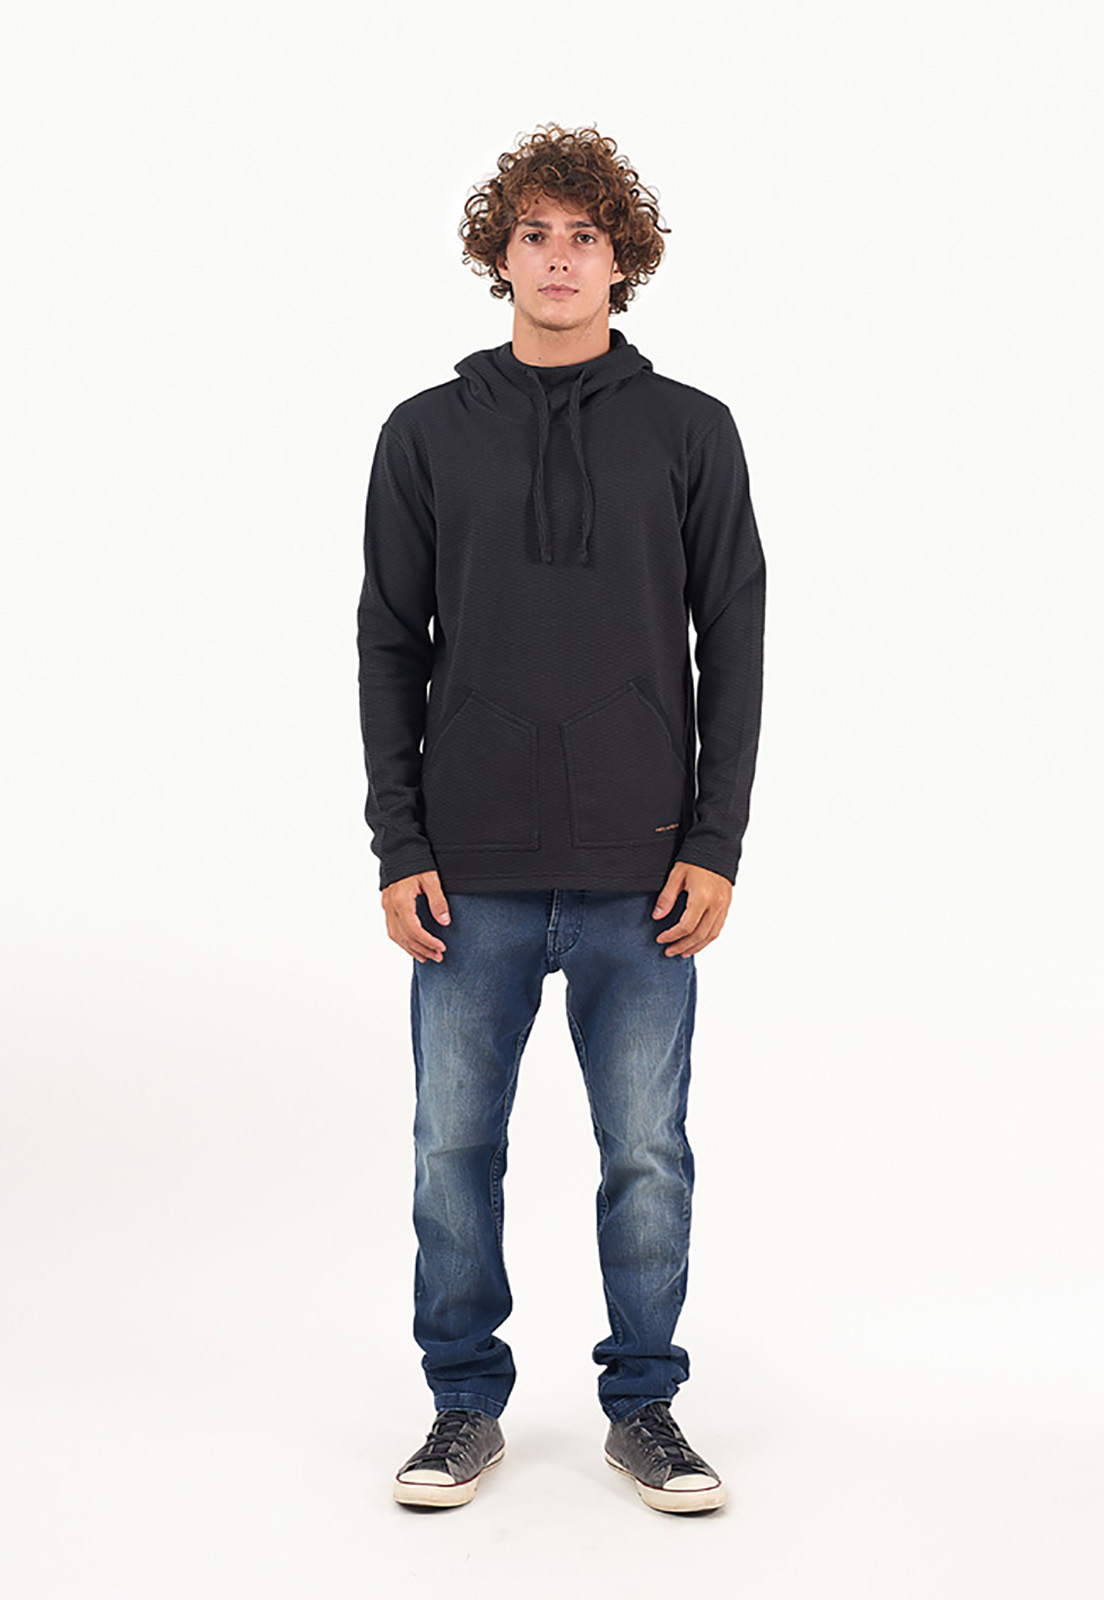 Casaco Hoodie Luka Melty  - melty surf & Co.